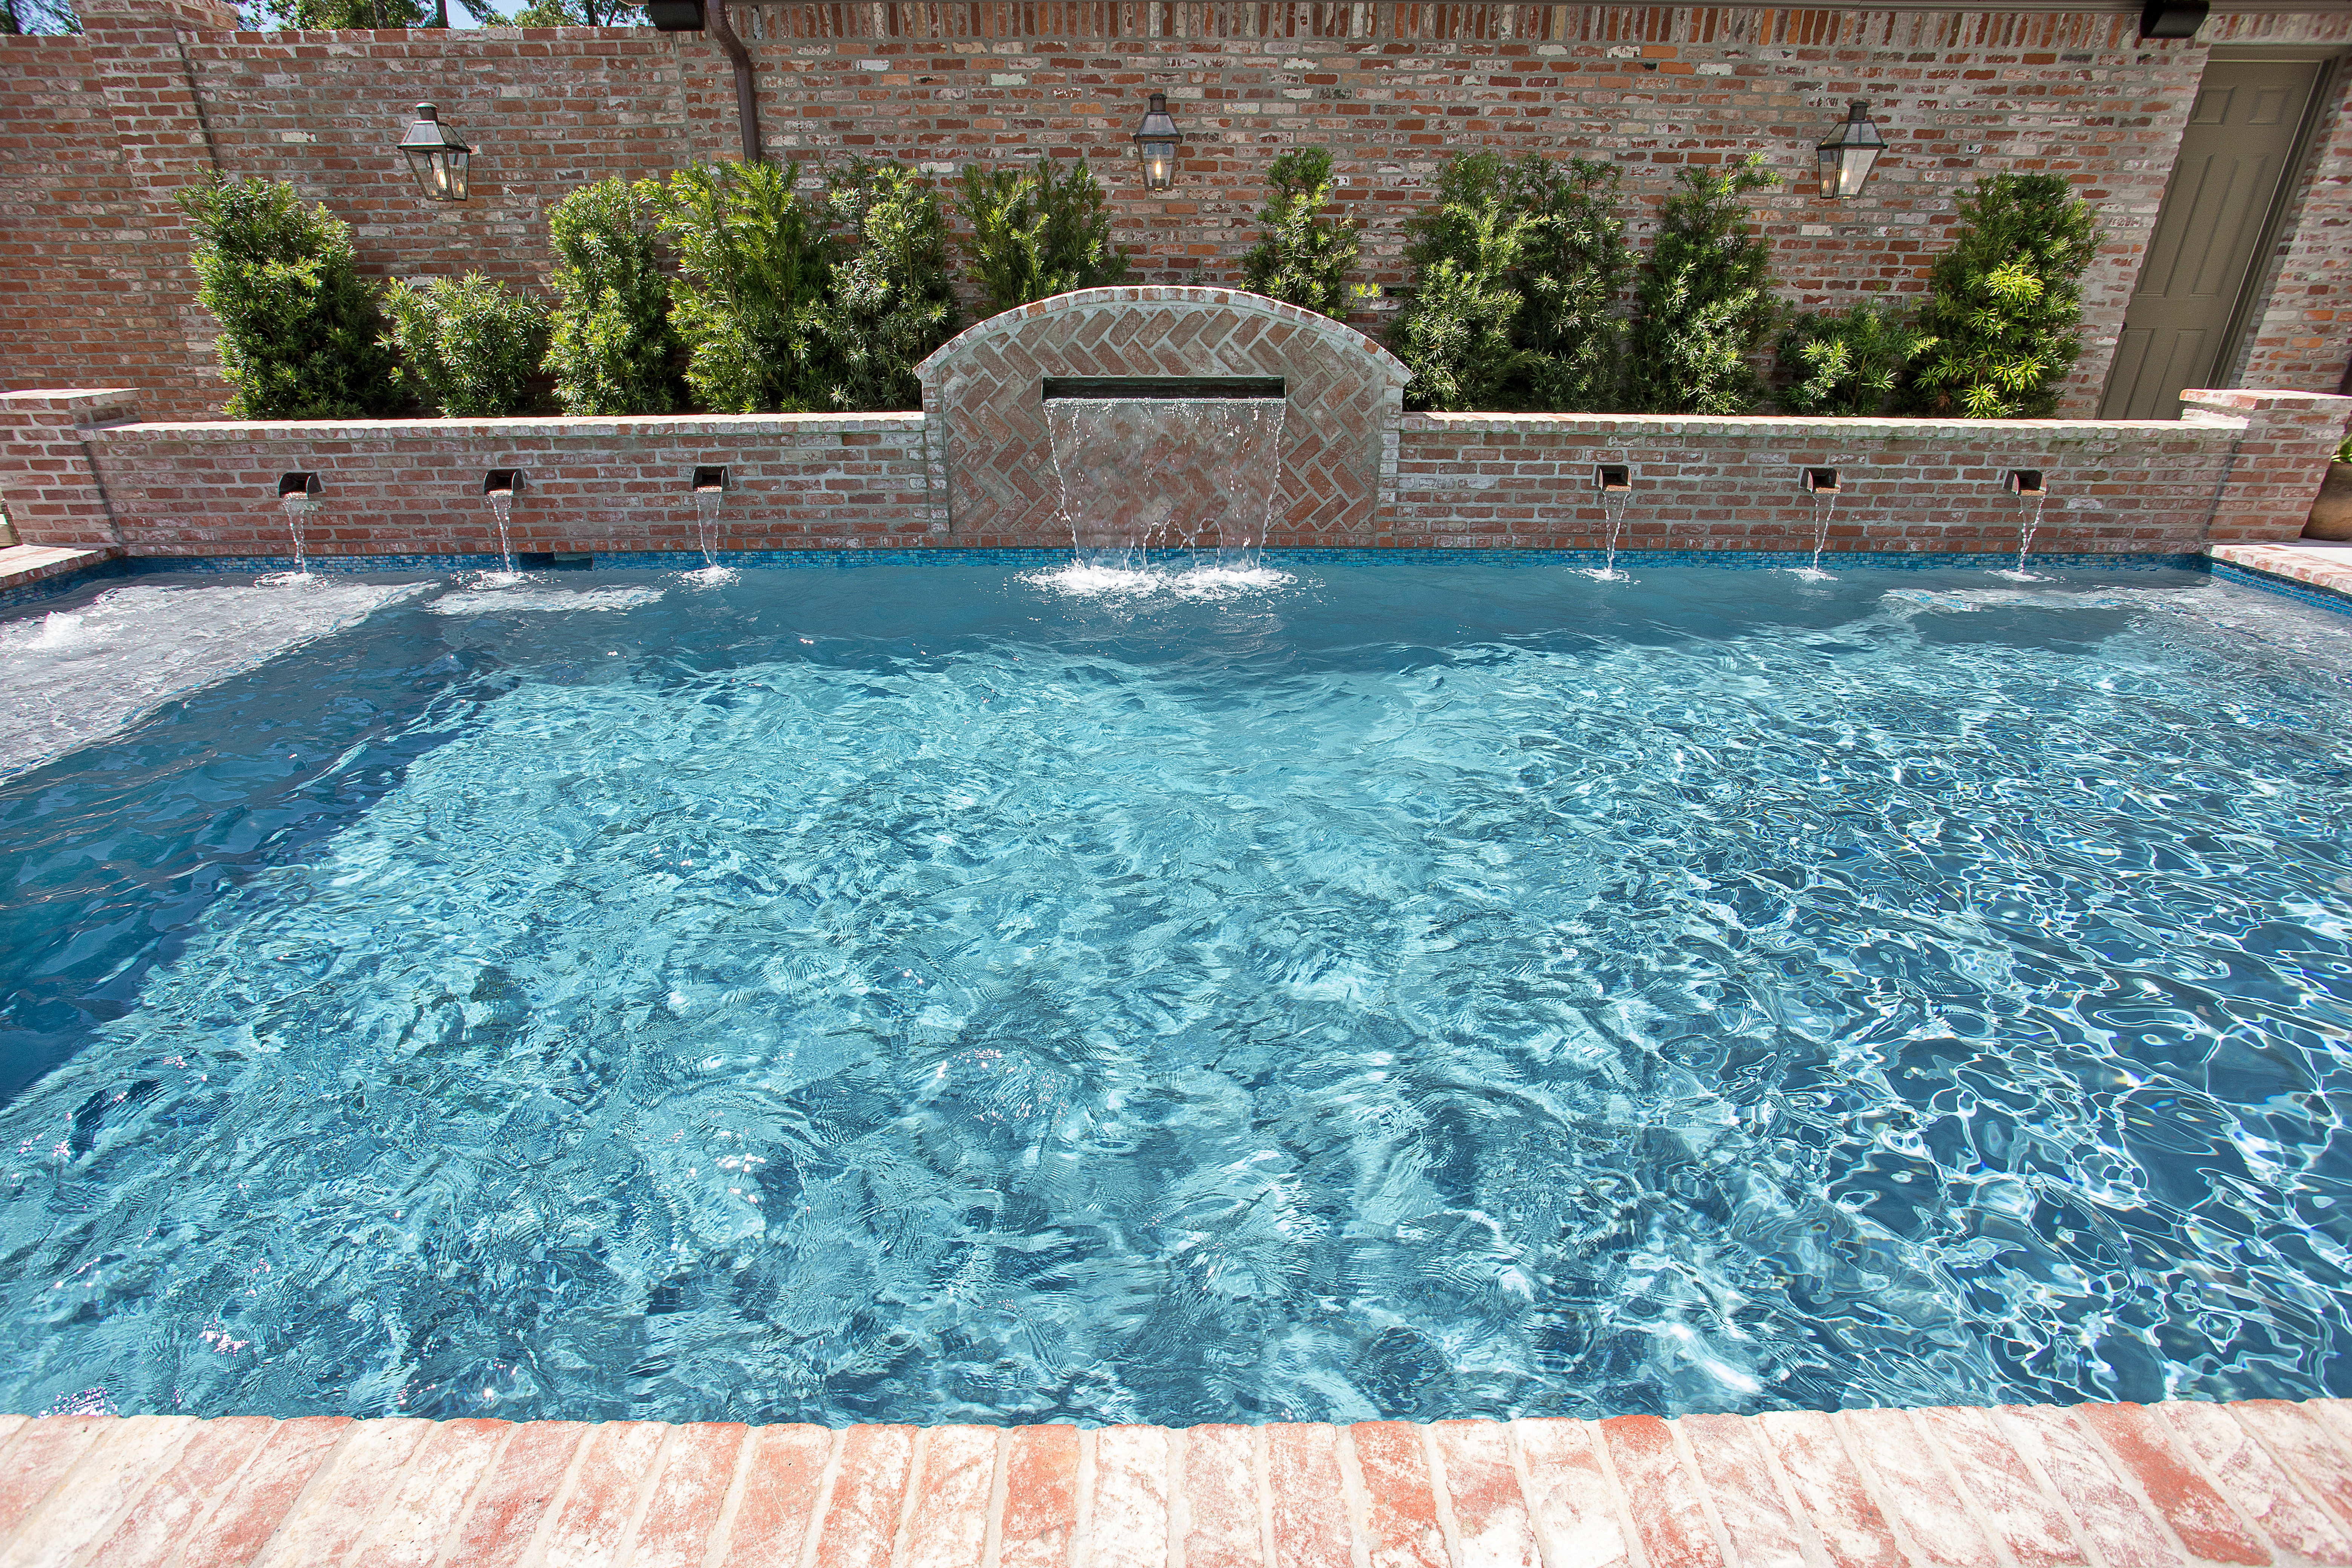 Water features in pool